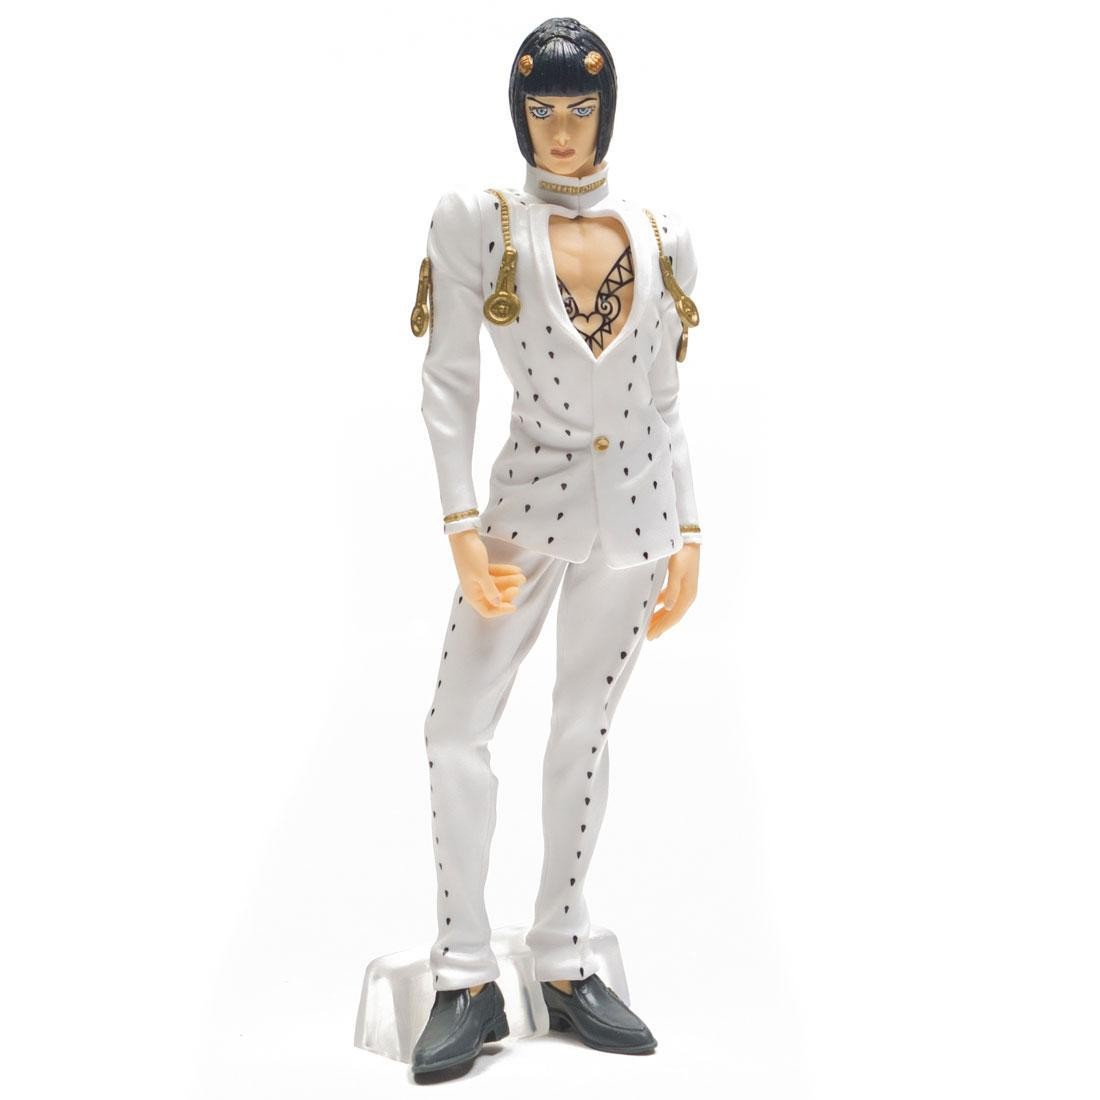 Banpresto Jojo S Bizarre Adventure Golden Wind Jojo S Figure Gallery 2 Bruno Bucciarati Figure White